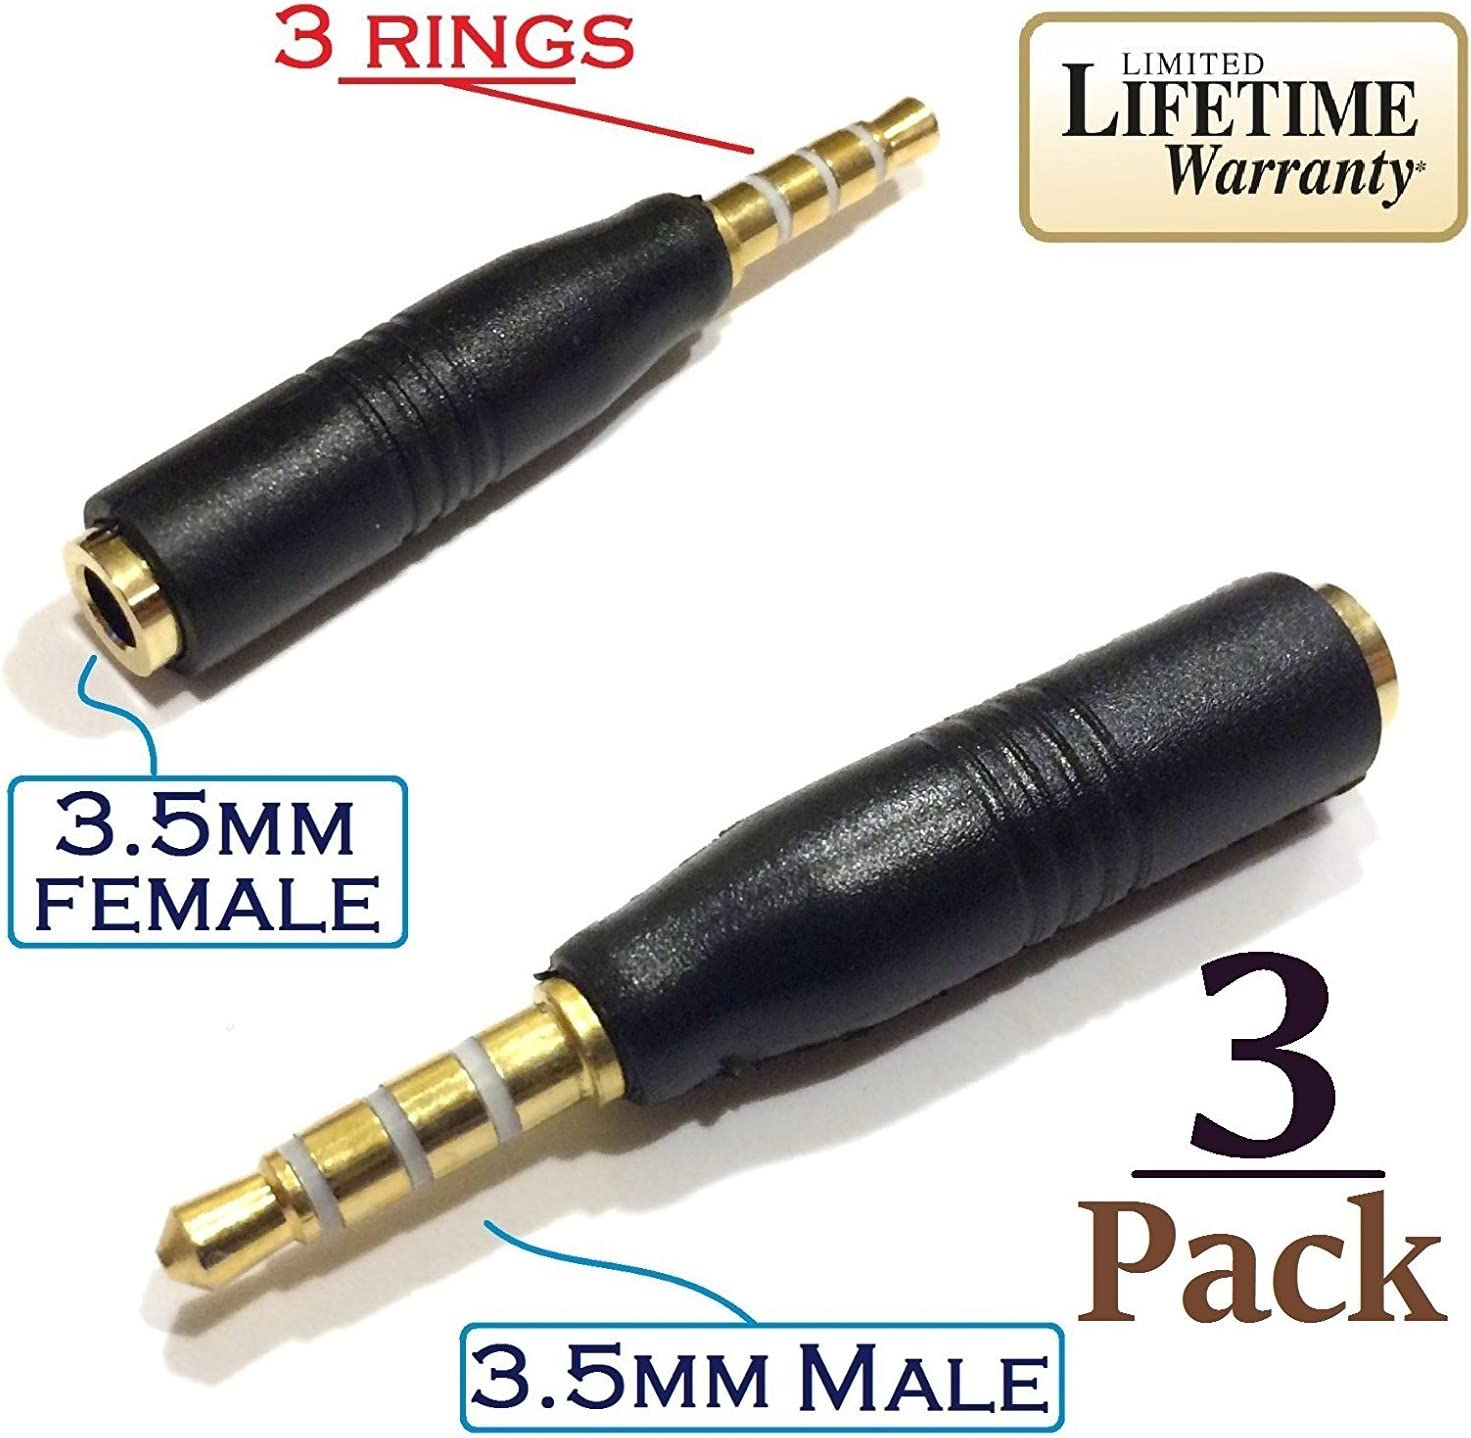 Josi Minea x 3 Pcs 3.5mm Audio Jack Extender Headphone Adapter with 4-Pole Connector for Apple iPhone 6/6S/6+/5S/SE iPad Nokia LG Nexus Samsung Galaxy S7/S6/S5 S7 Edge Note 5 & most devices [ 3 Pack ]